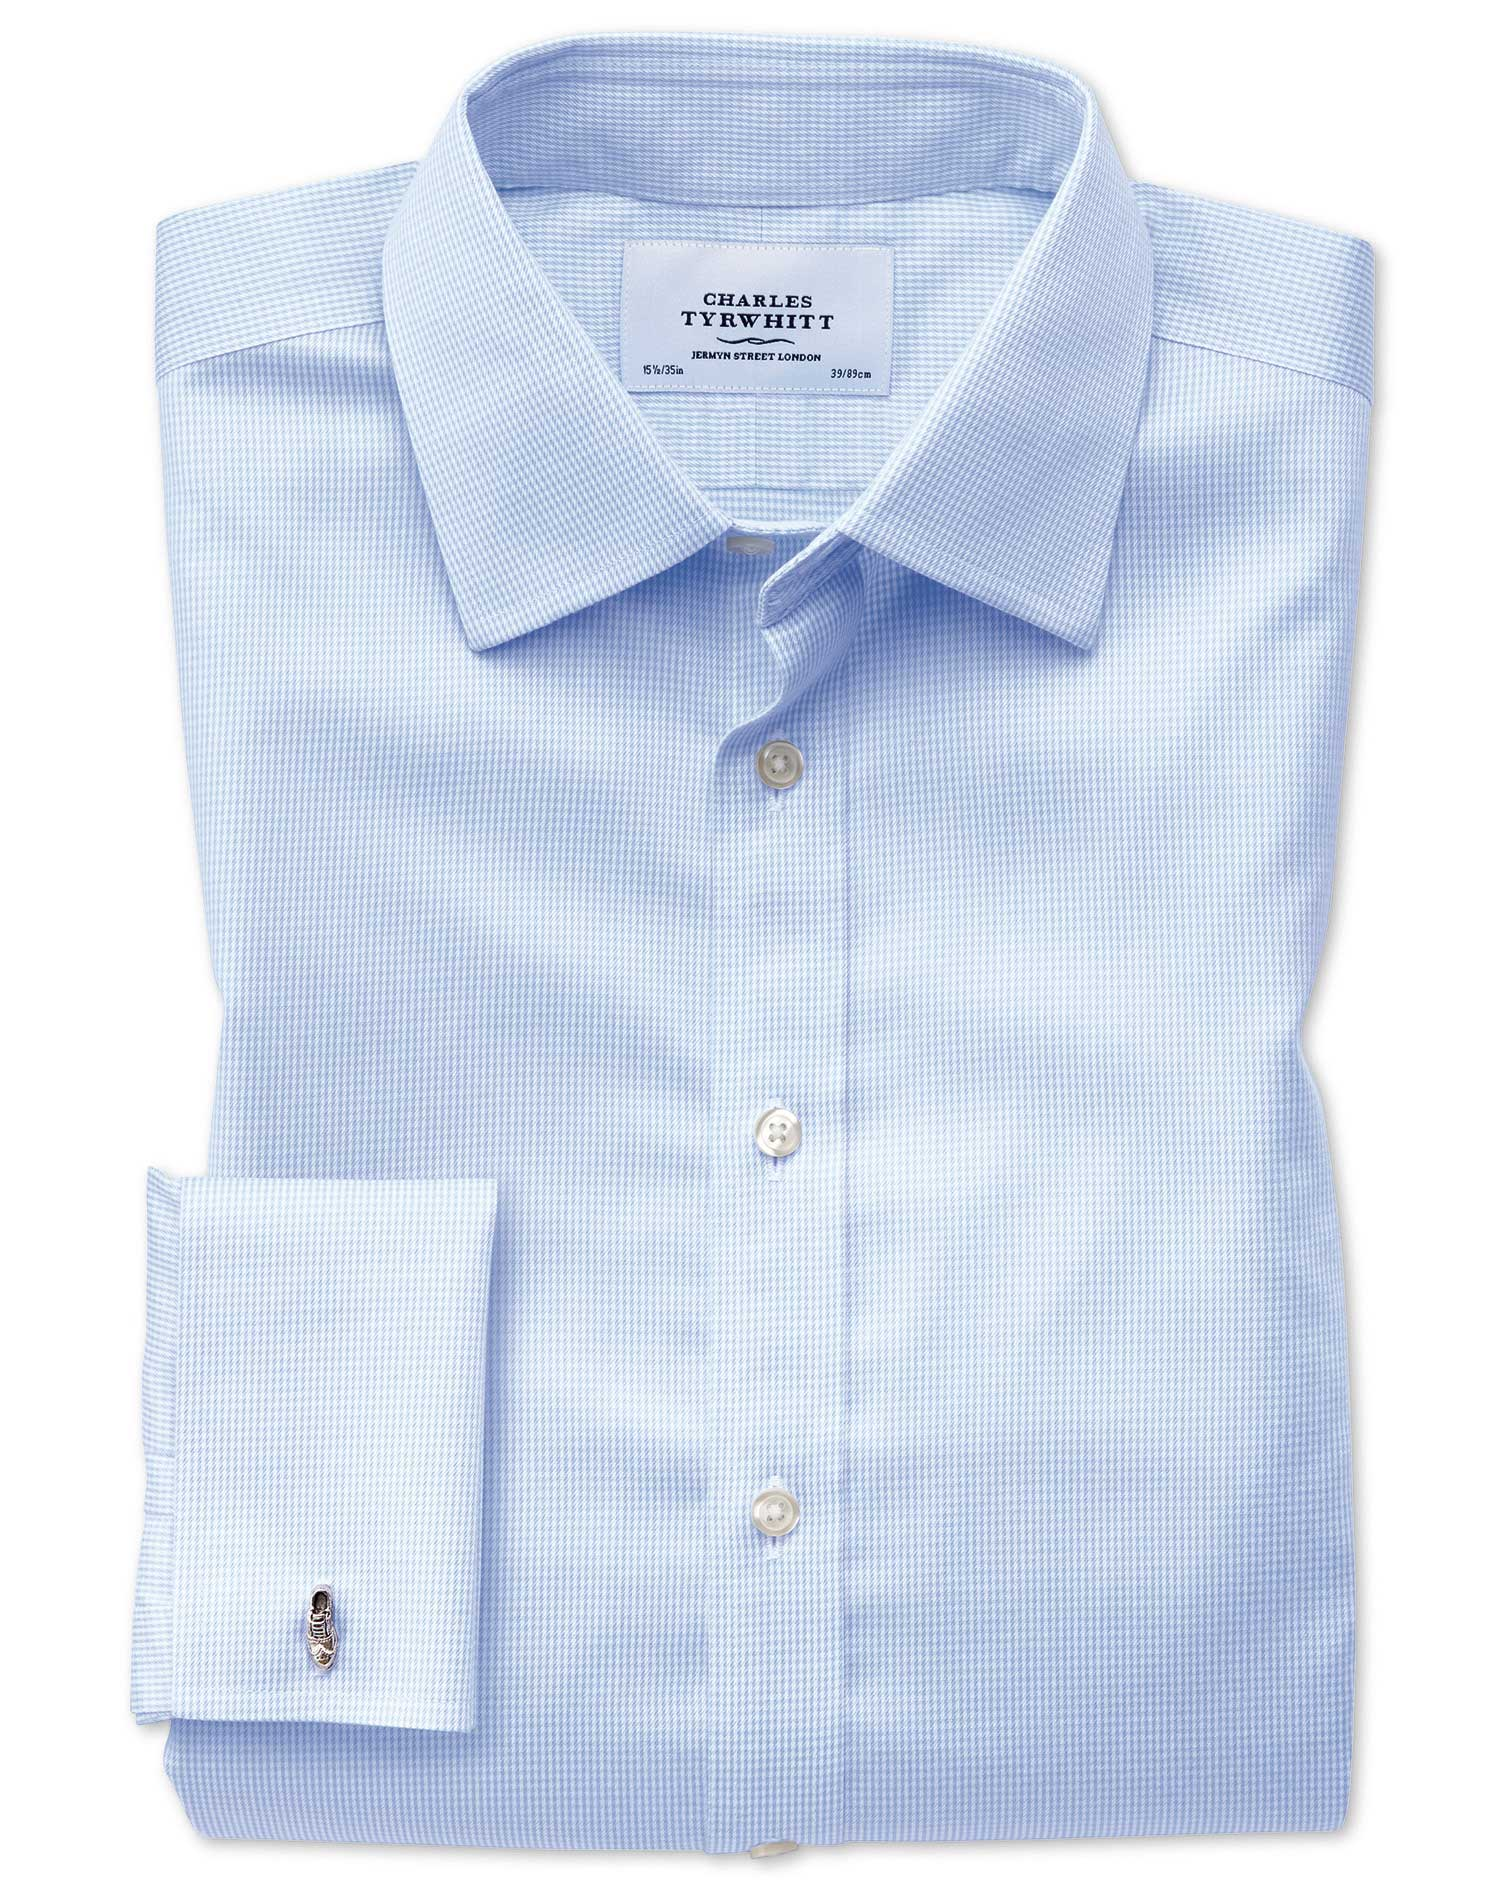 Extra Slim Fit Non-Iron Puppytooth Sky Blue Cotton Formal Shirt Double Cuff Size 15/32 by Charles Ty